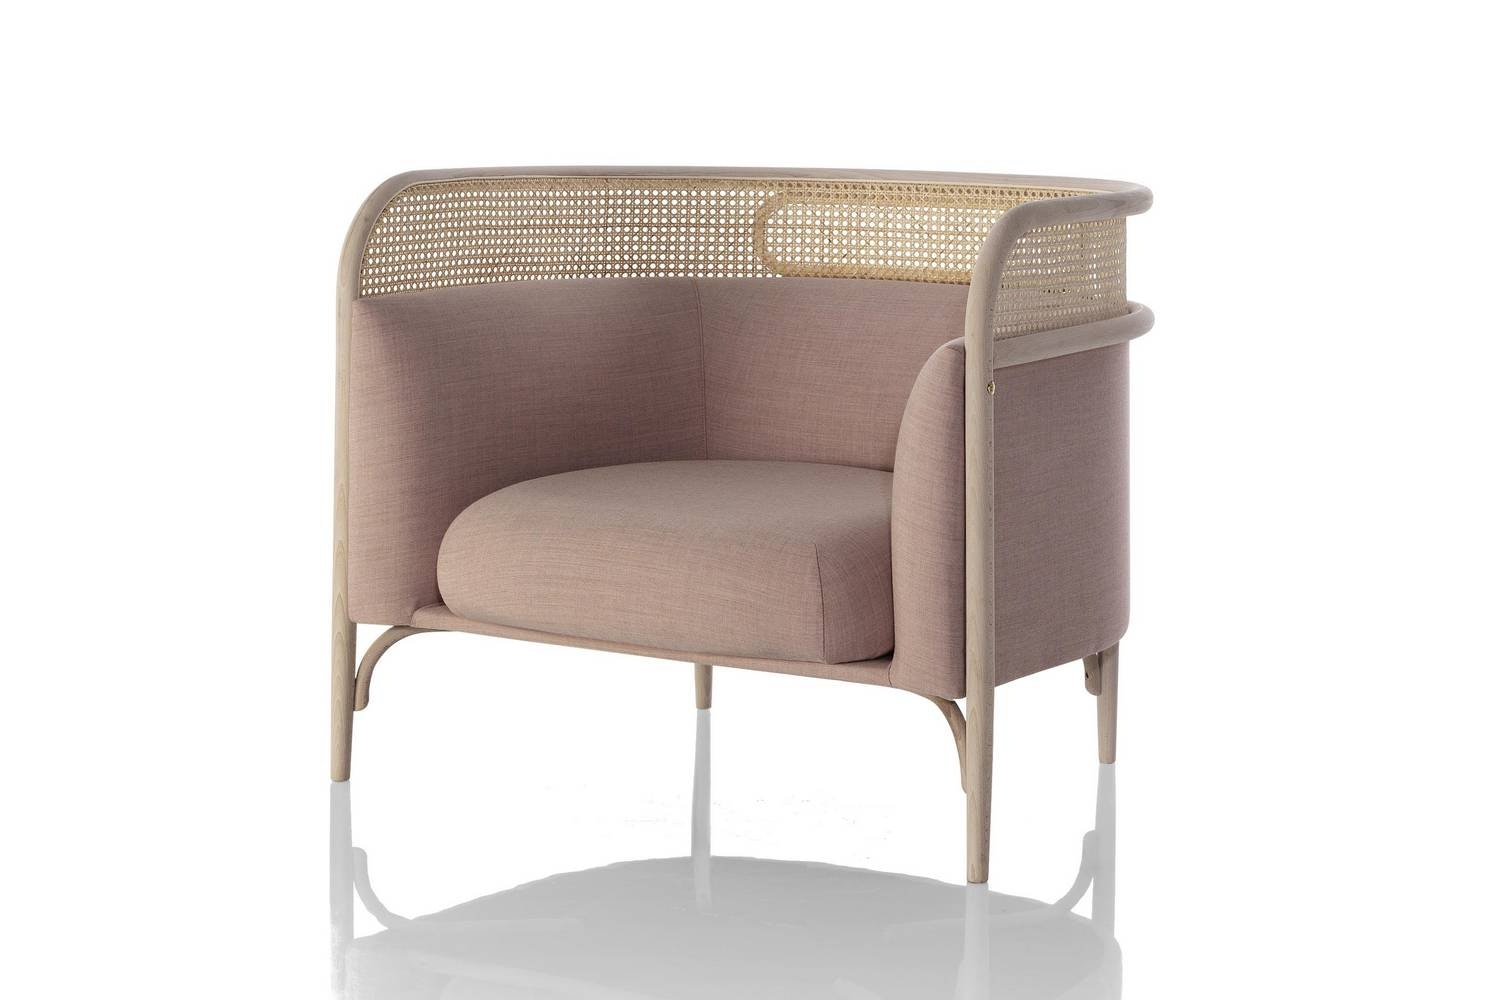 Targa Lounge Armchair by GamFratesi for Wiener GTV Design